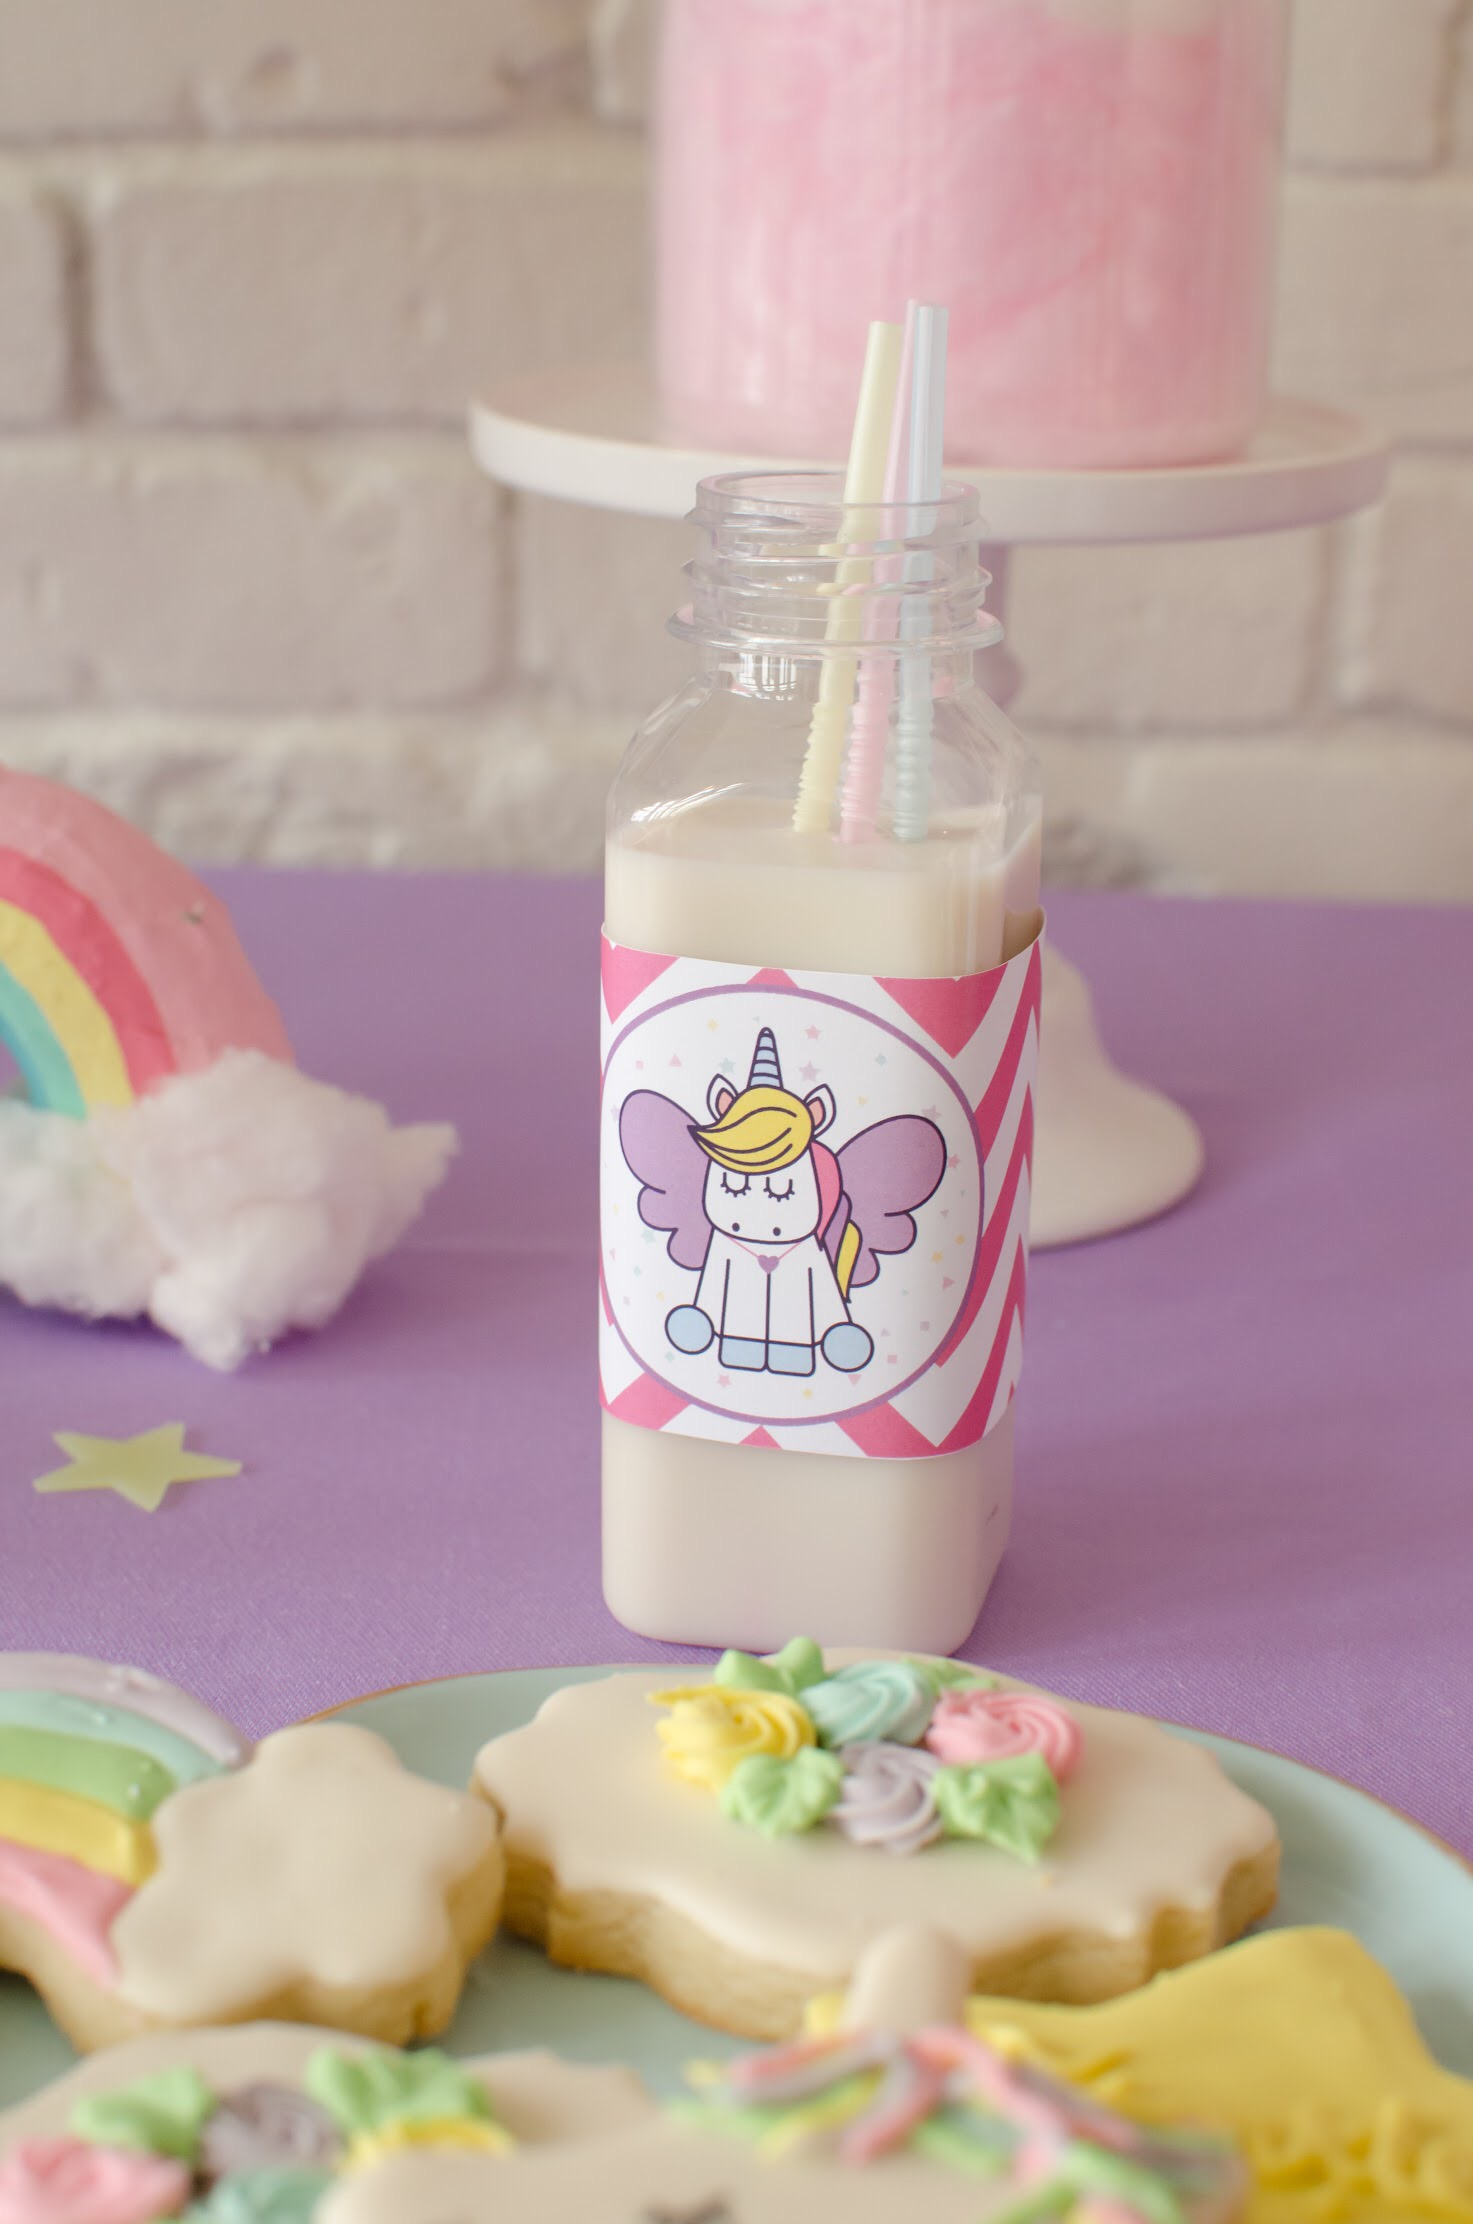 Download this cute free printable unicorn drink label party ideas from Mint Event Design www.minteventdesign.com #unicornparty #unicornbirthday #printables #freeprintables #birthdayparty #birthdaypartyideas